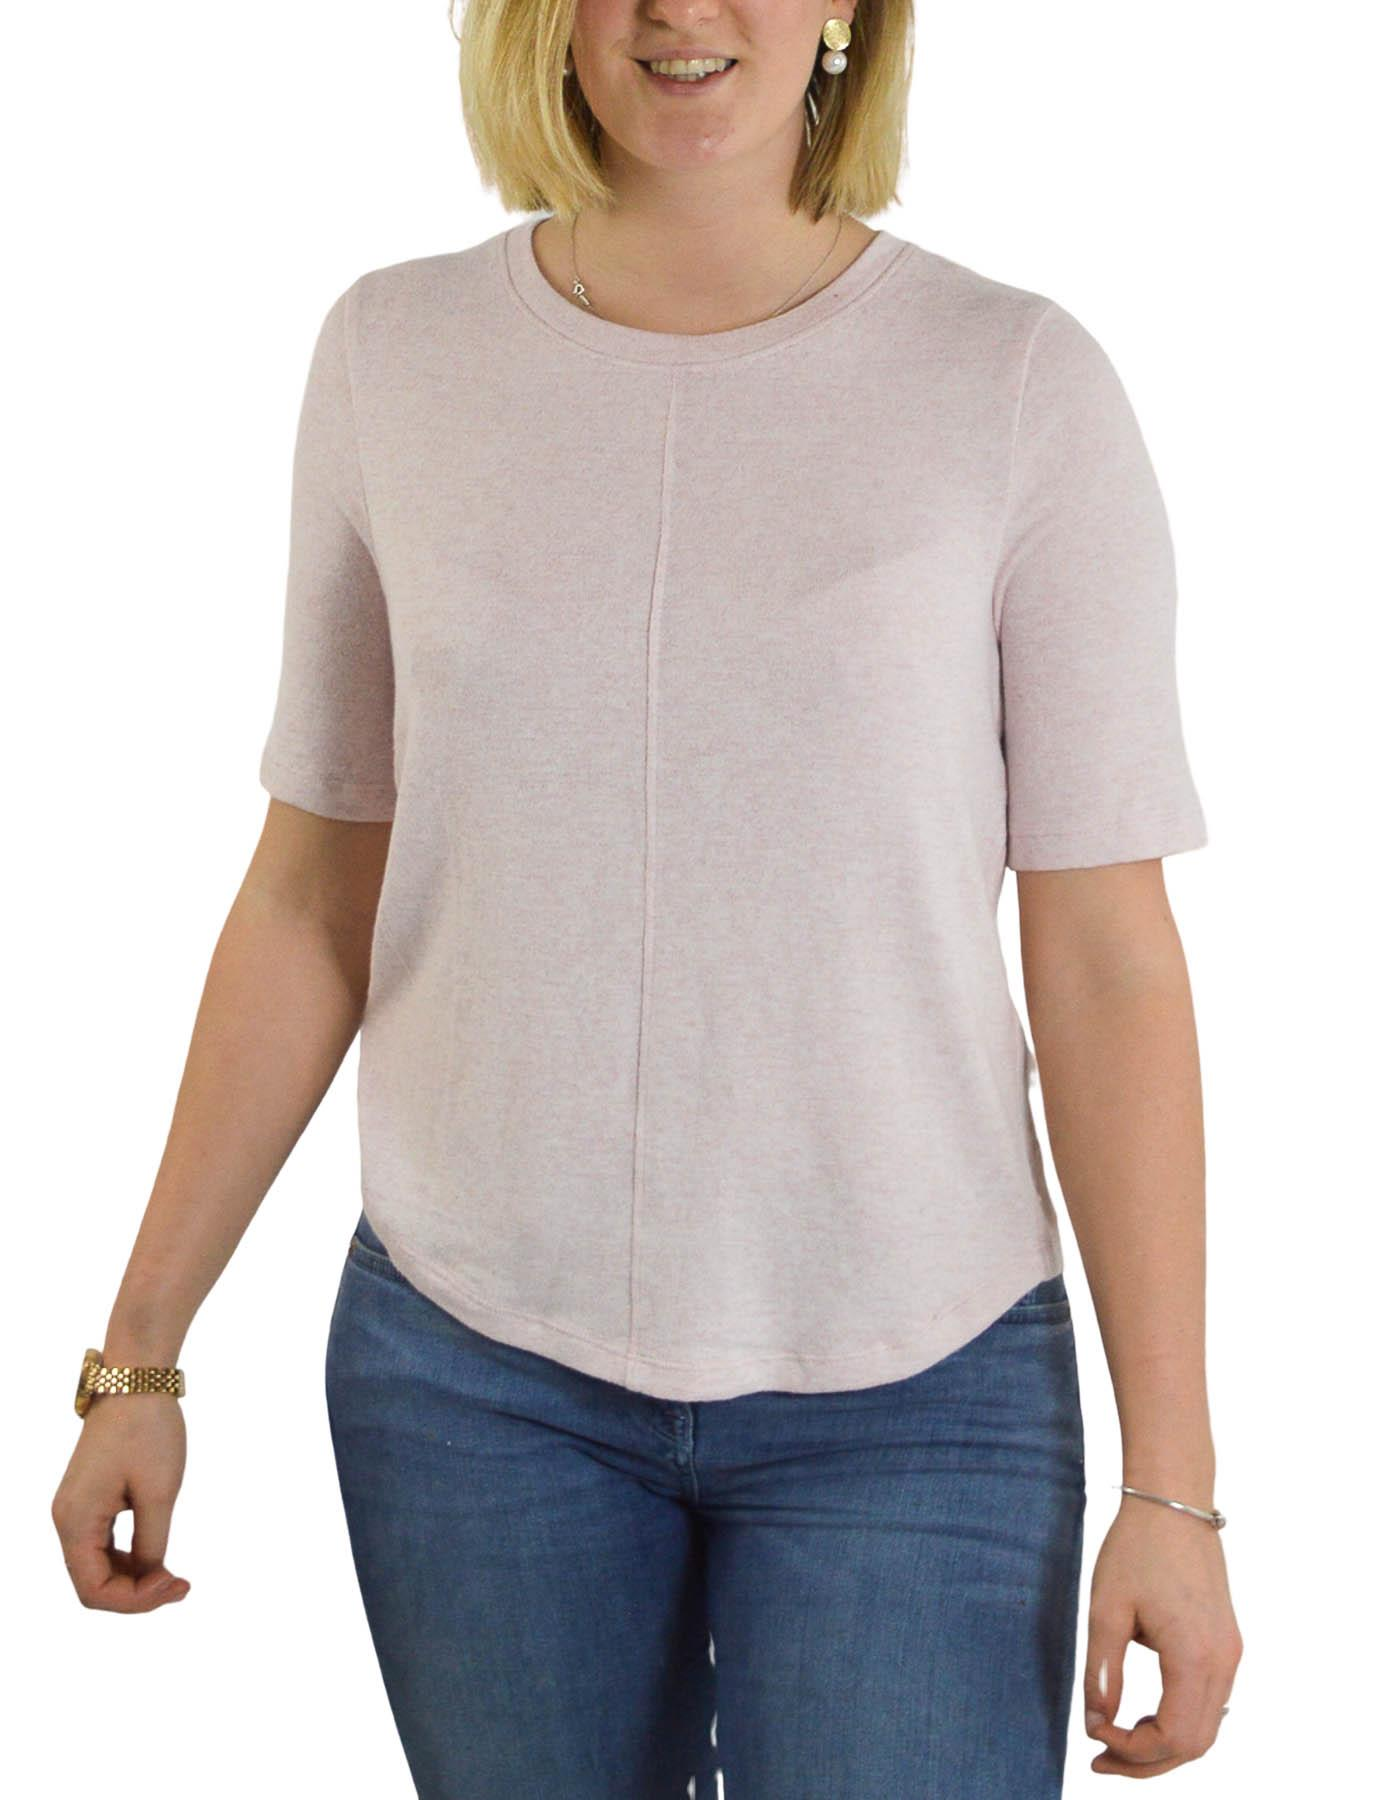 Ex-M-amp-S-Round-Neck-Fine-Knit-Short-Sleeve-Jumper-Top-Pale-Pink-or-Navy-Size-8-24 thumbnail 13